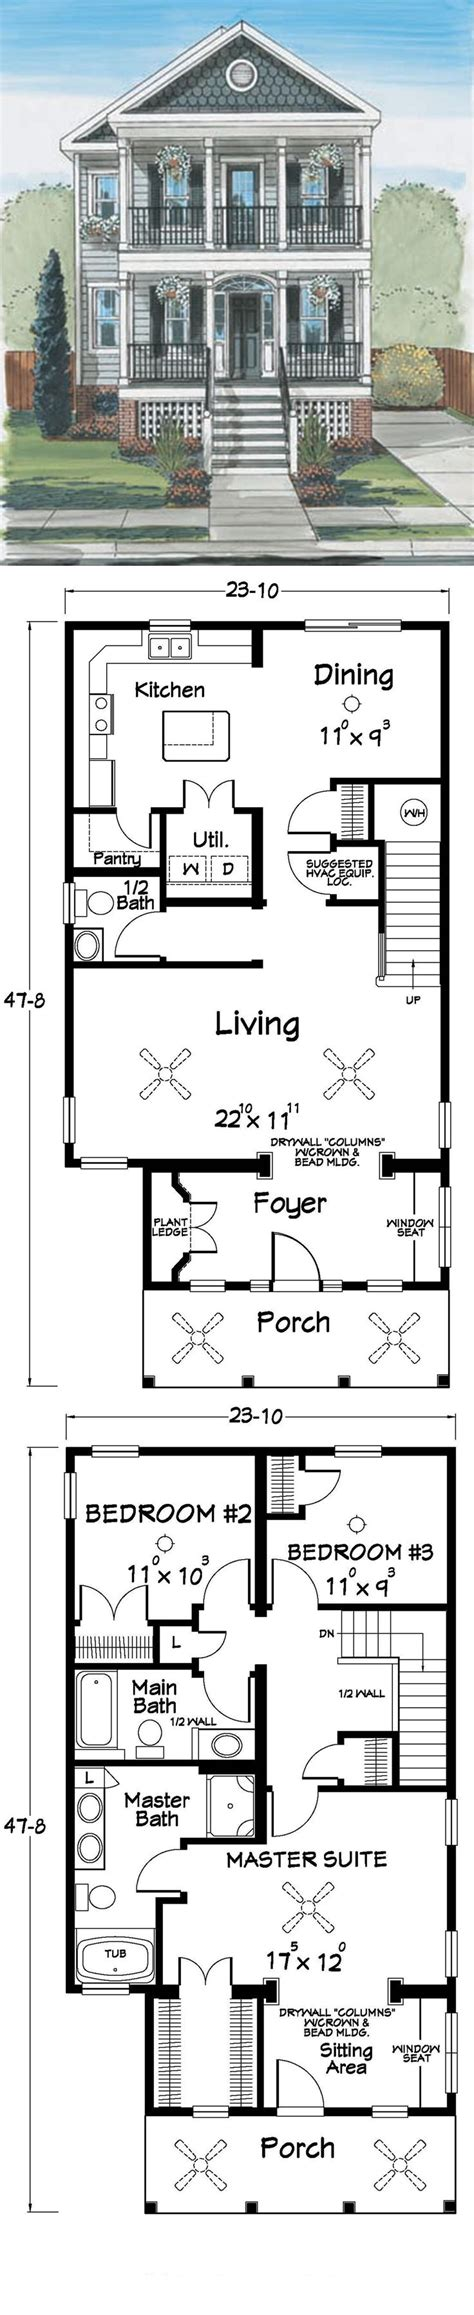 house floor plan ideas best 25 sims3 house ideas on sims house sims